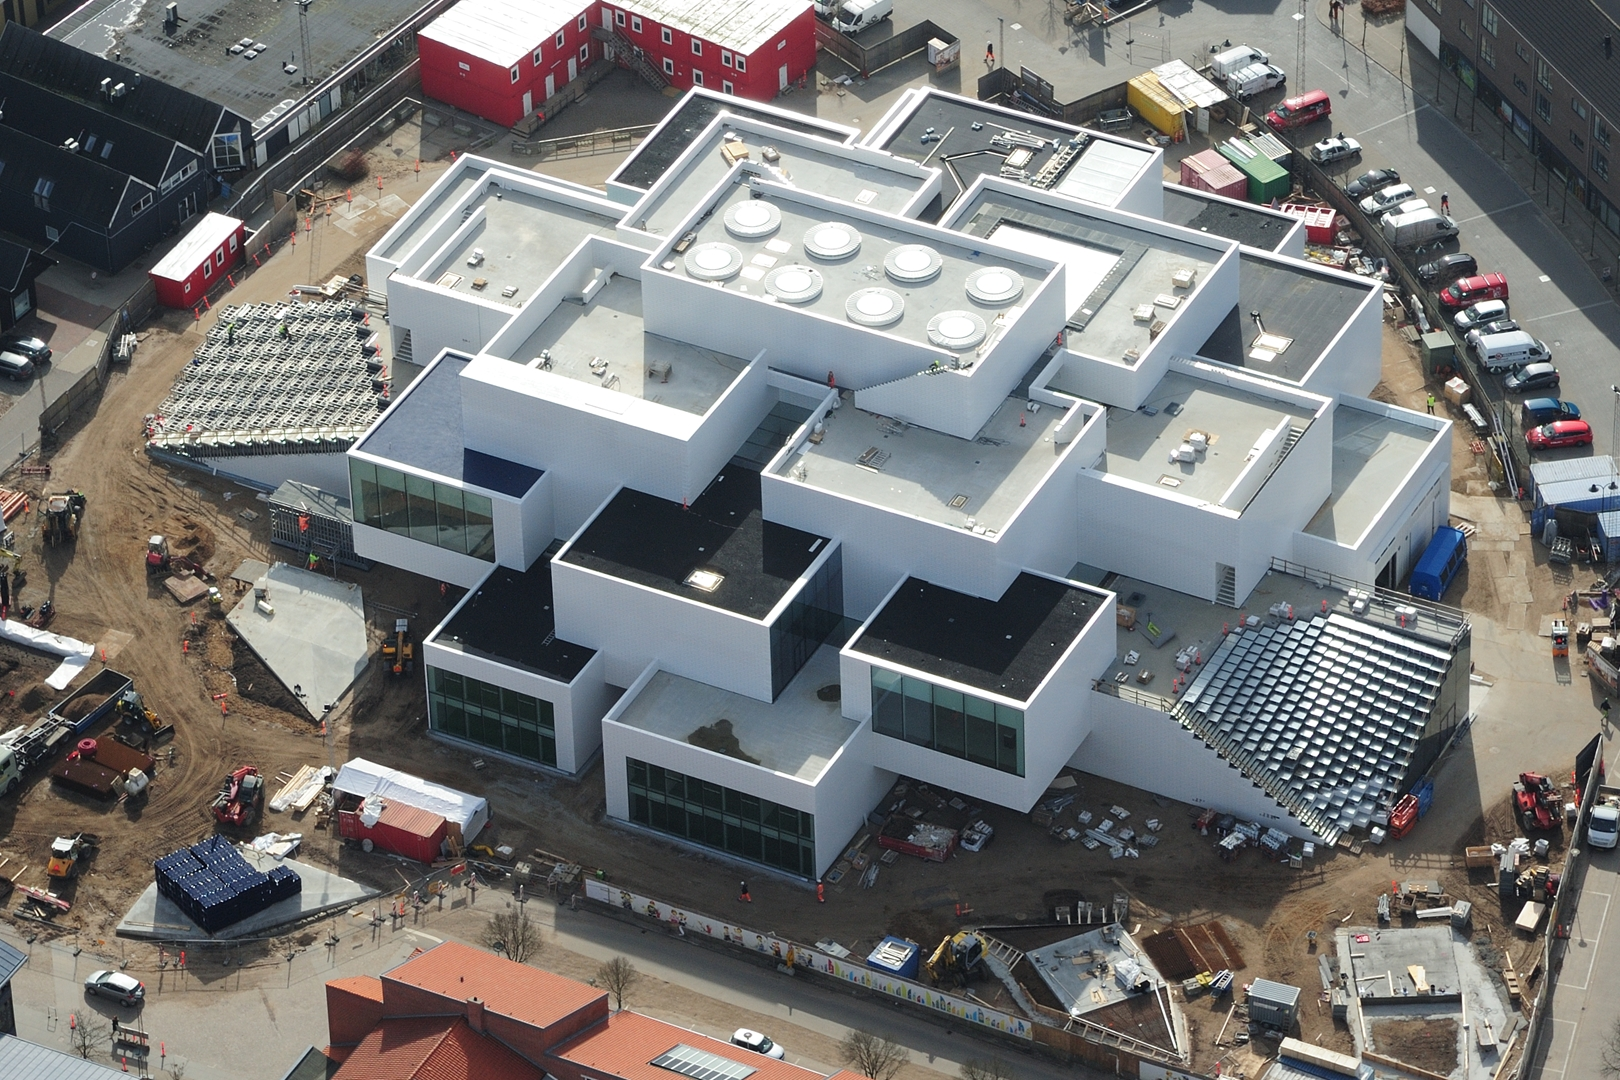 LEGO-House-aerial_Image by LEGO_March 2017_original (Copy)